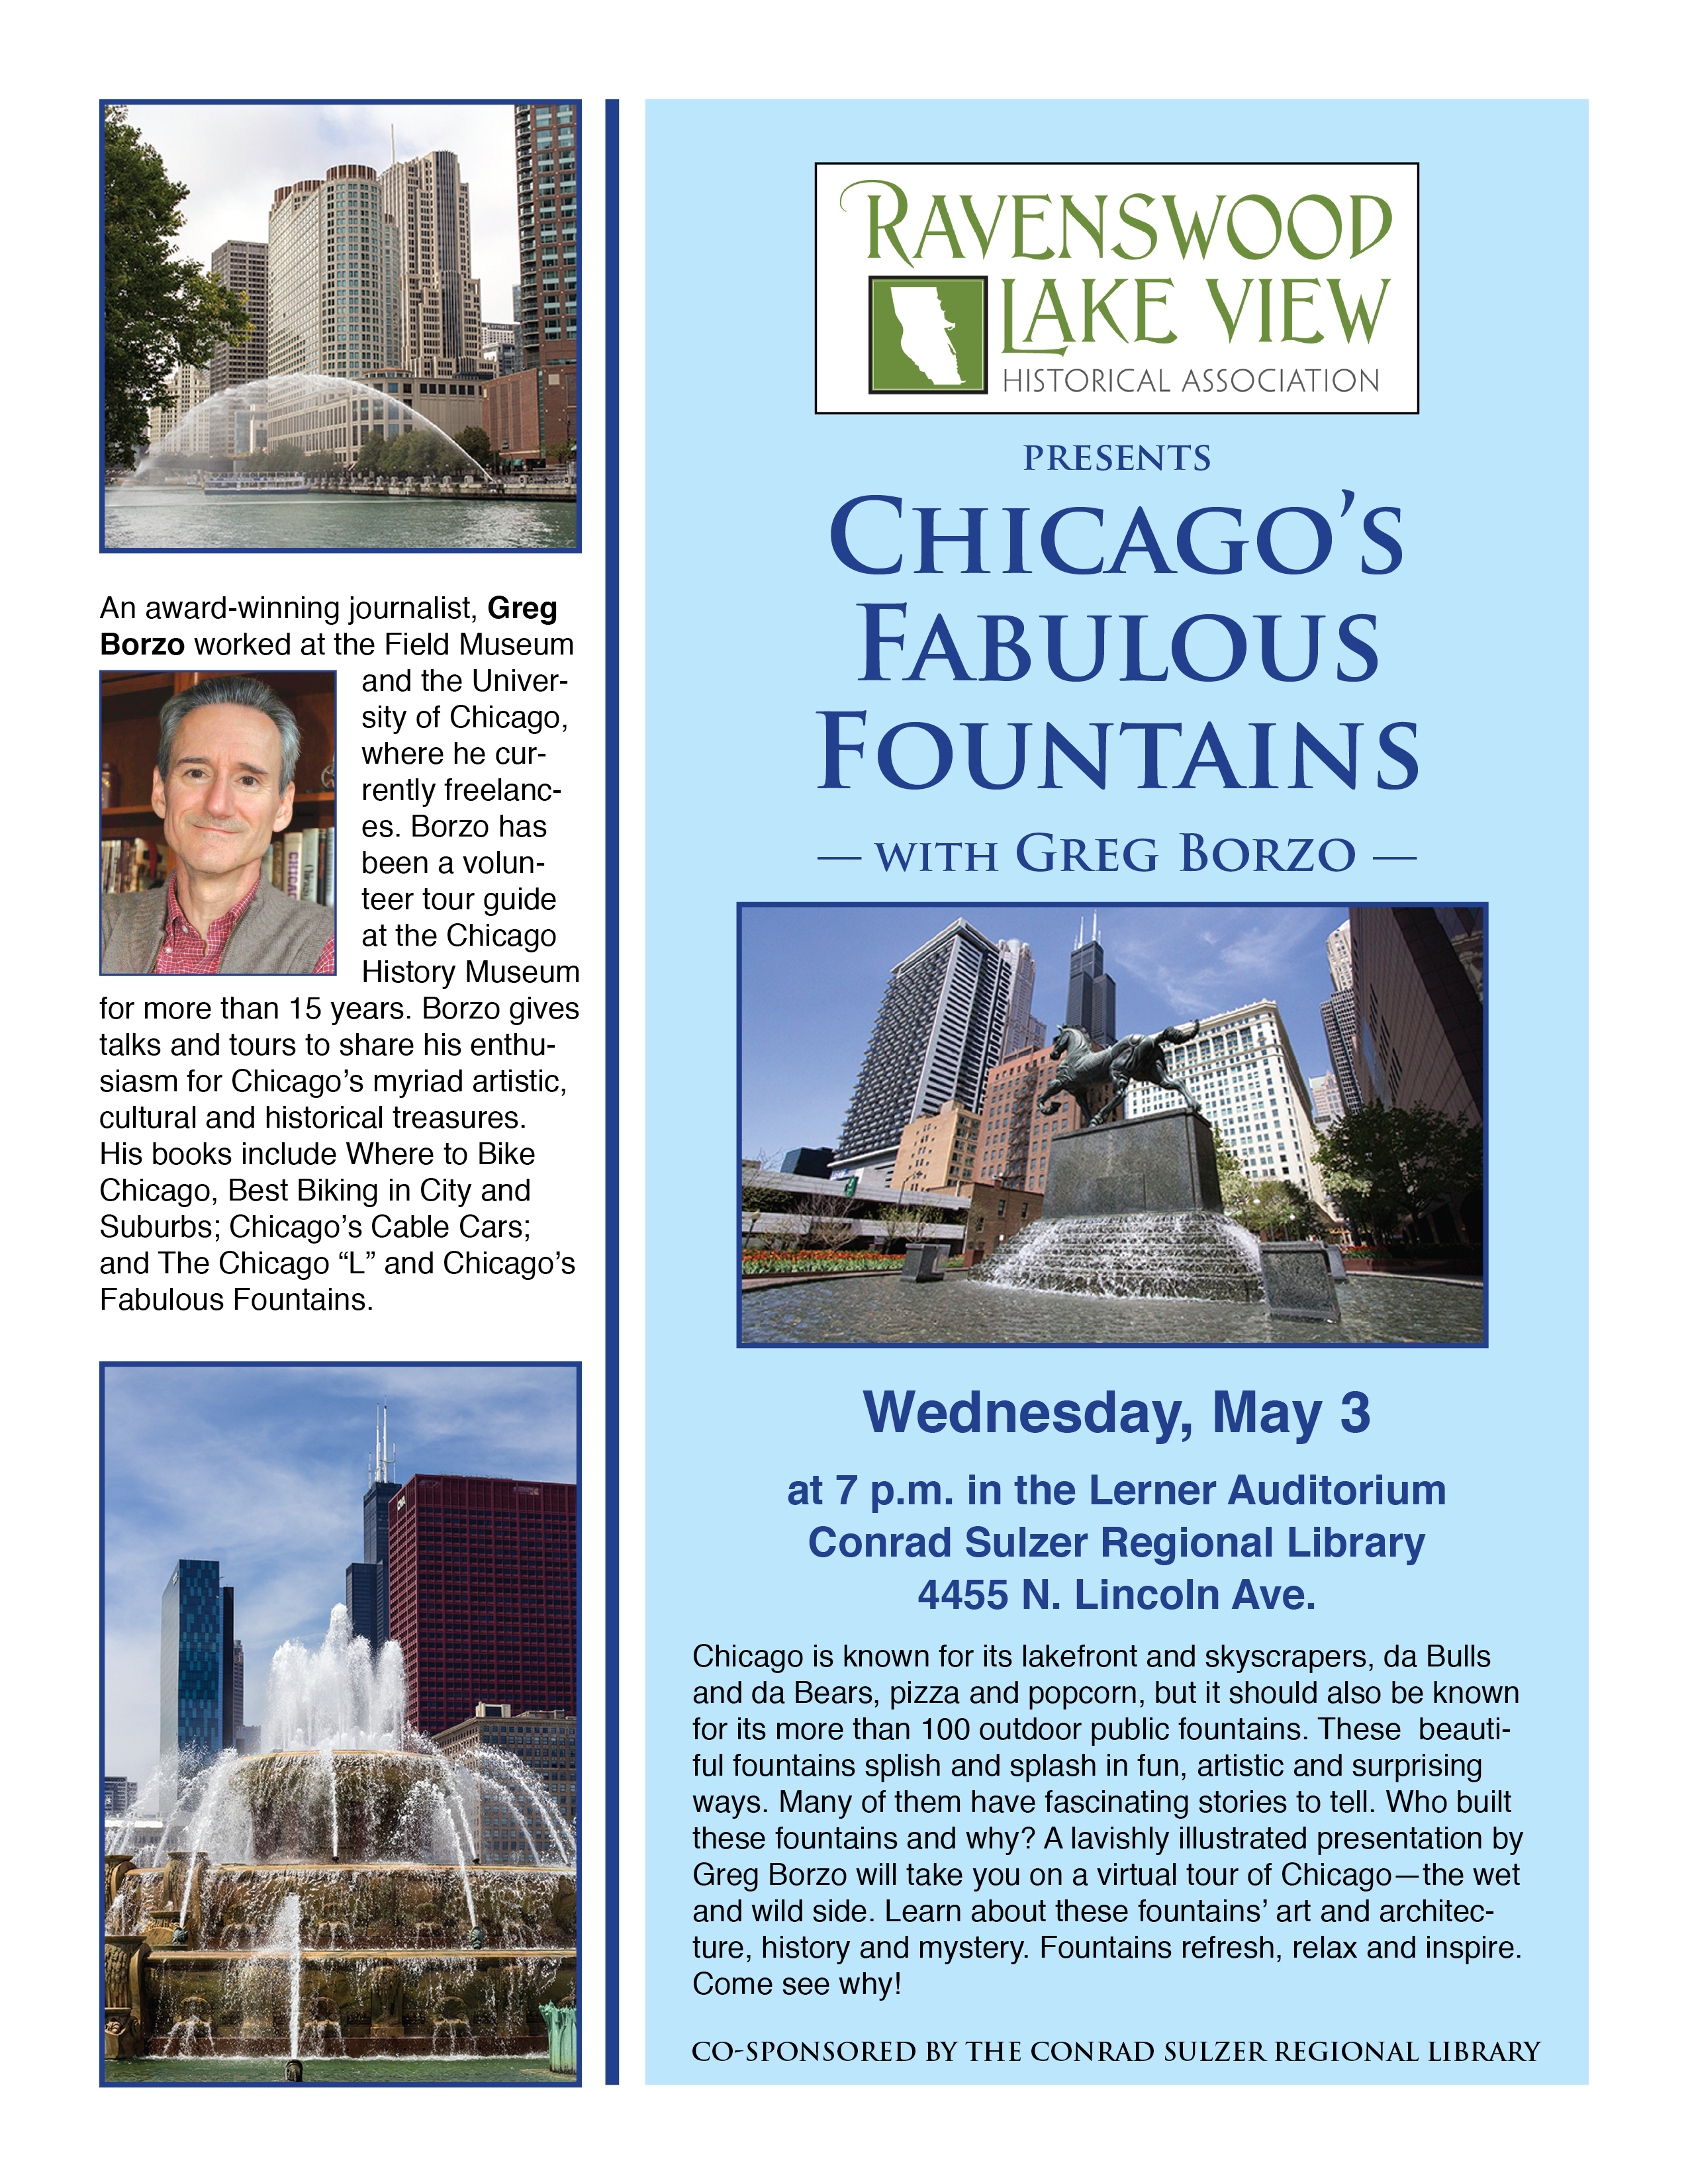 Chicago's Fabulous Fountains, Wednesday, May 3, 7:00 p.m., Conrad Sulzer Regional Library, 4455 N. Lincoln Ave.